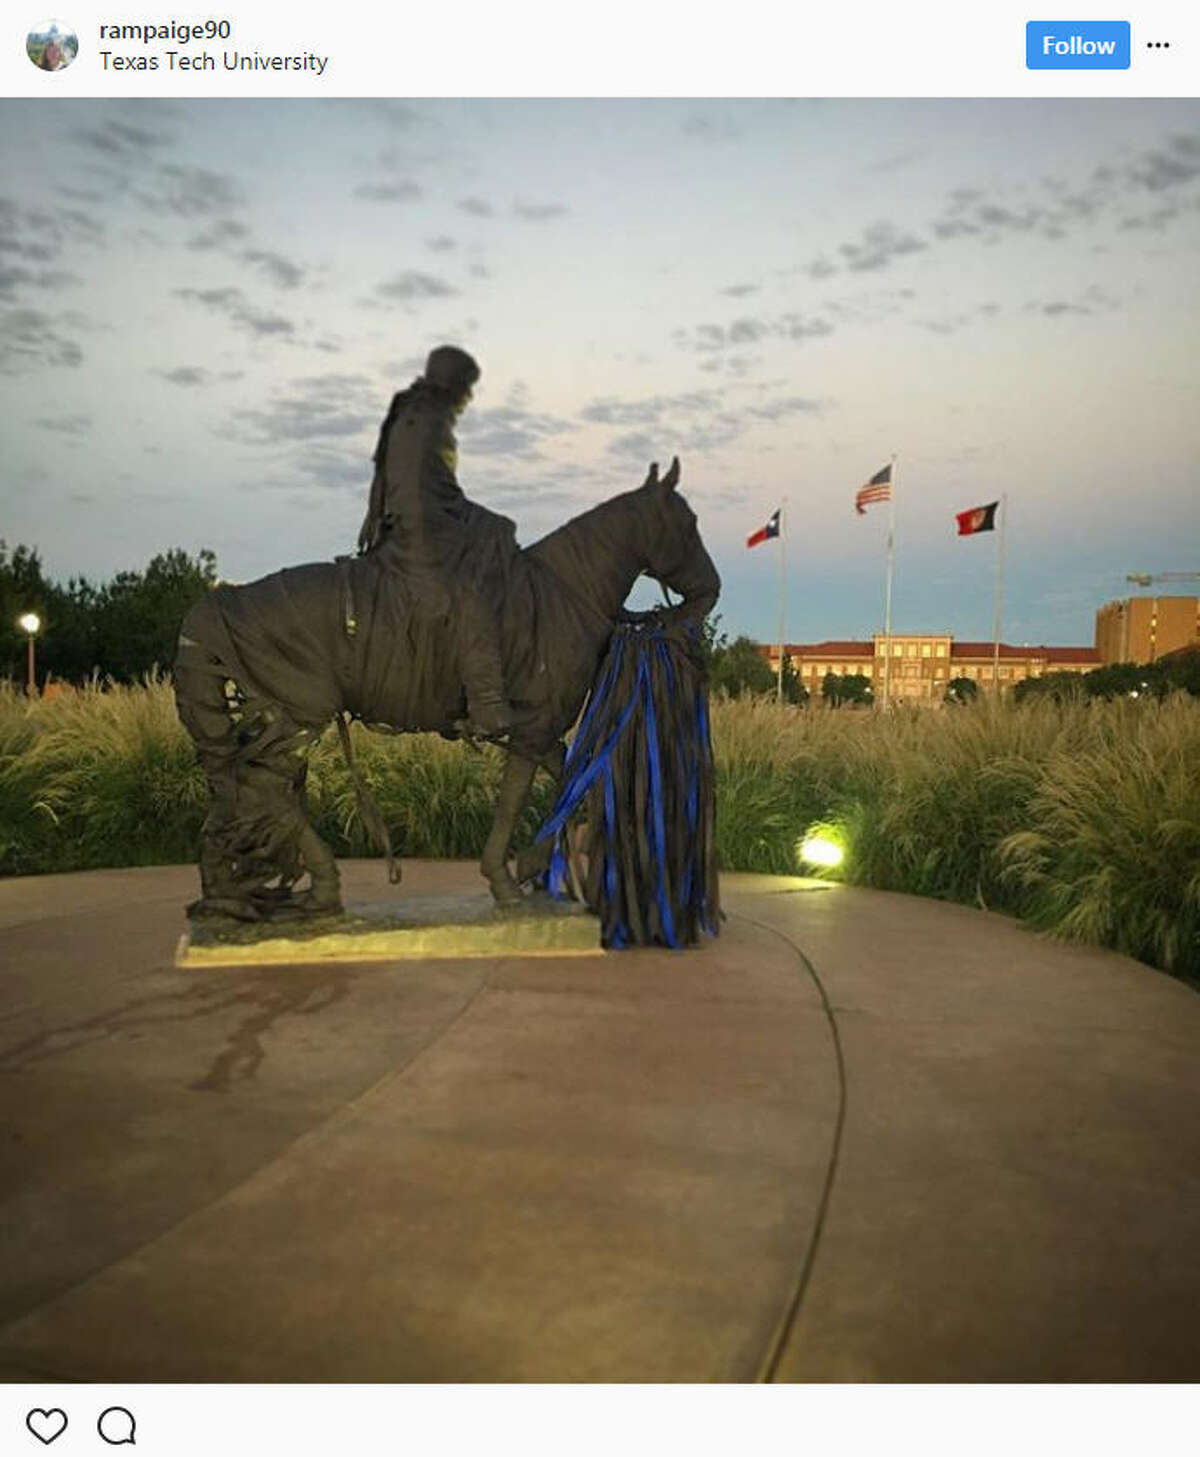 On Monday night, Texas Tech student Hollis A. Daniels allegedly shot an officer in the head after a routine welfare check after drugs were found in his dorm. After the incident, students wrapped the iconic Will Rogers & Soapsuds statue with black and blue ribbons.Source: Instagram